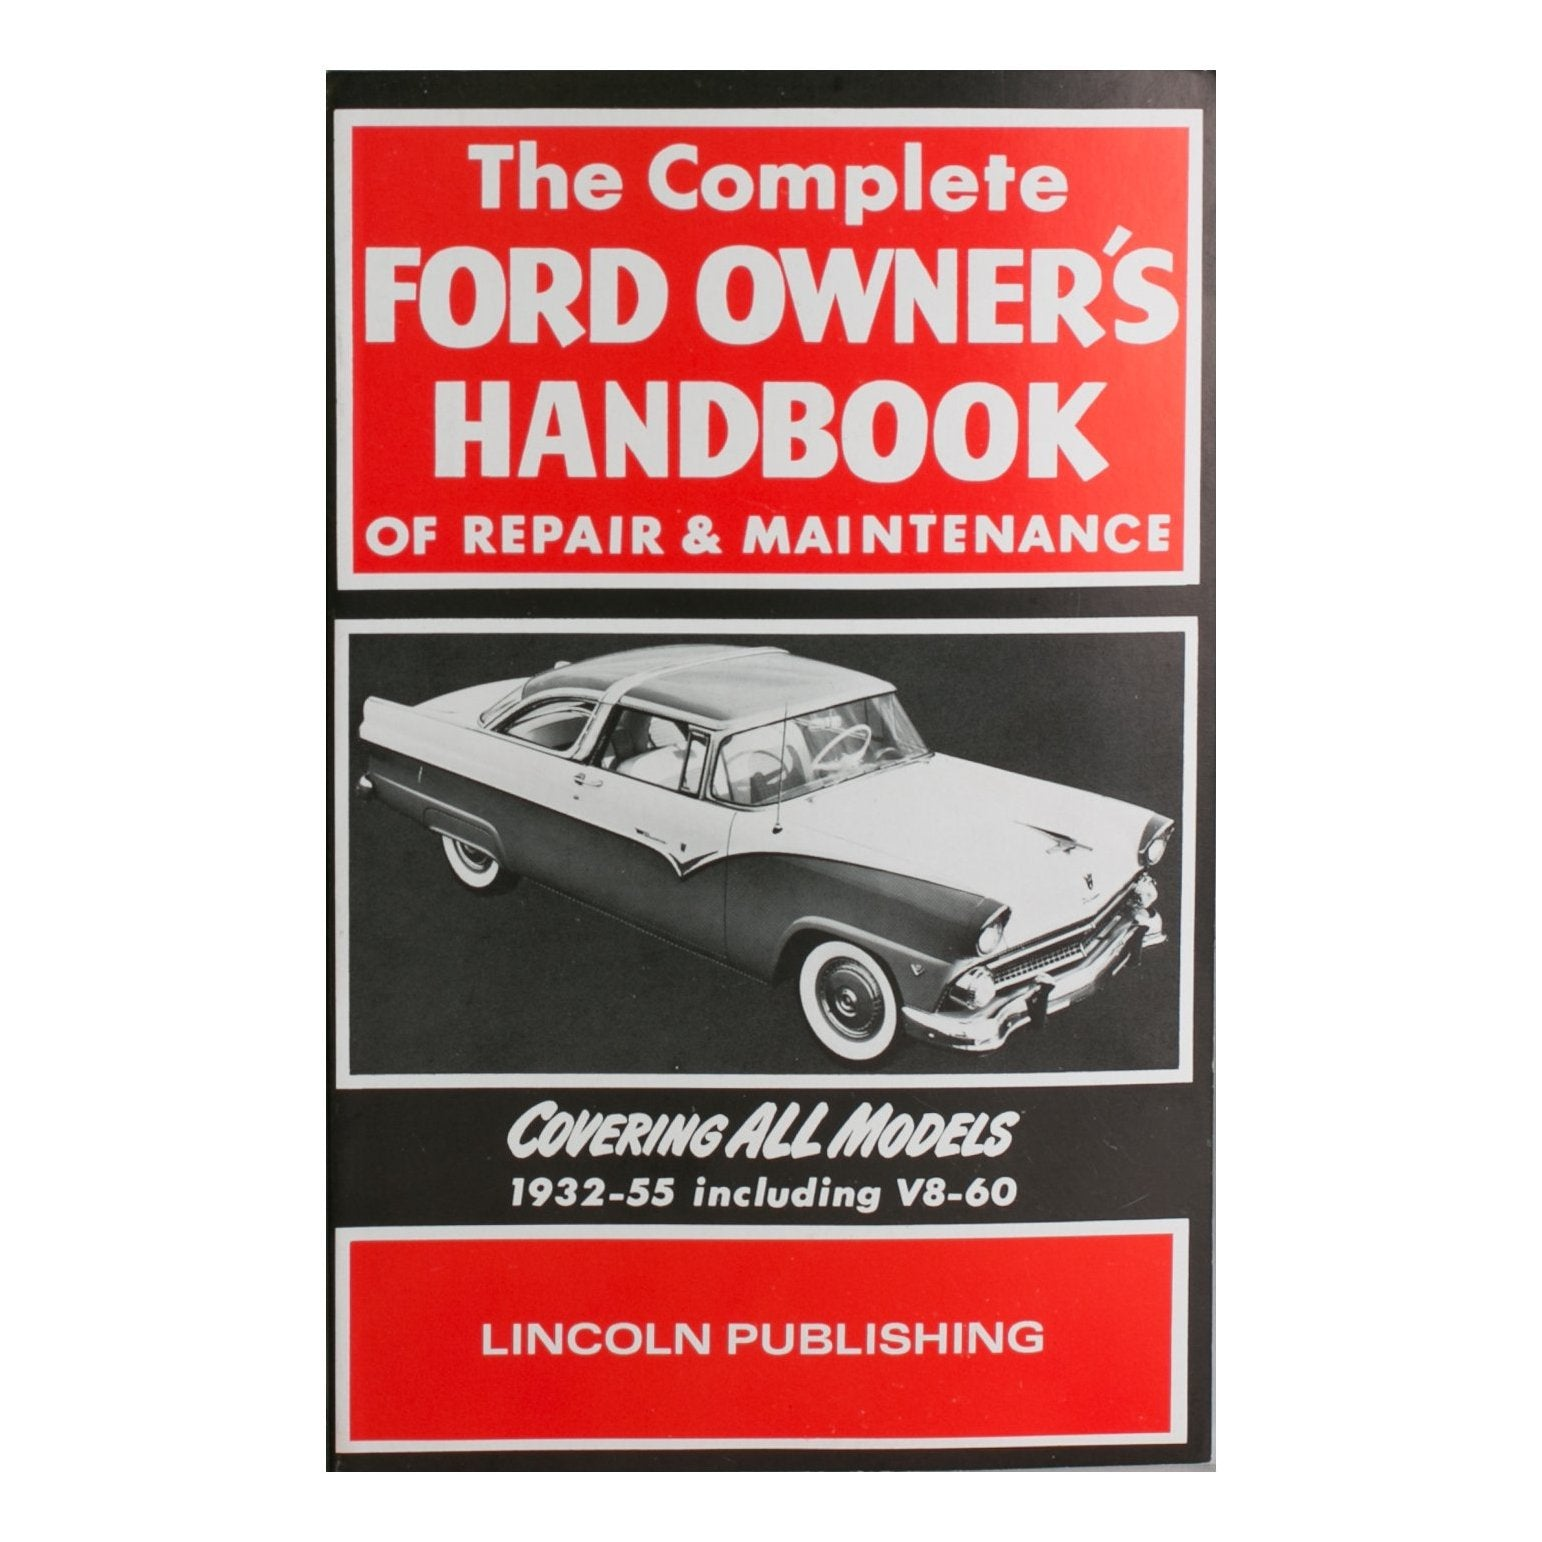 The Complete Ford Owners Handbook of Repair & Maintenance